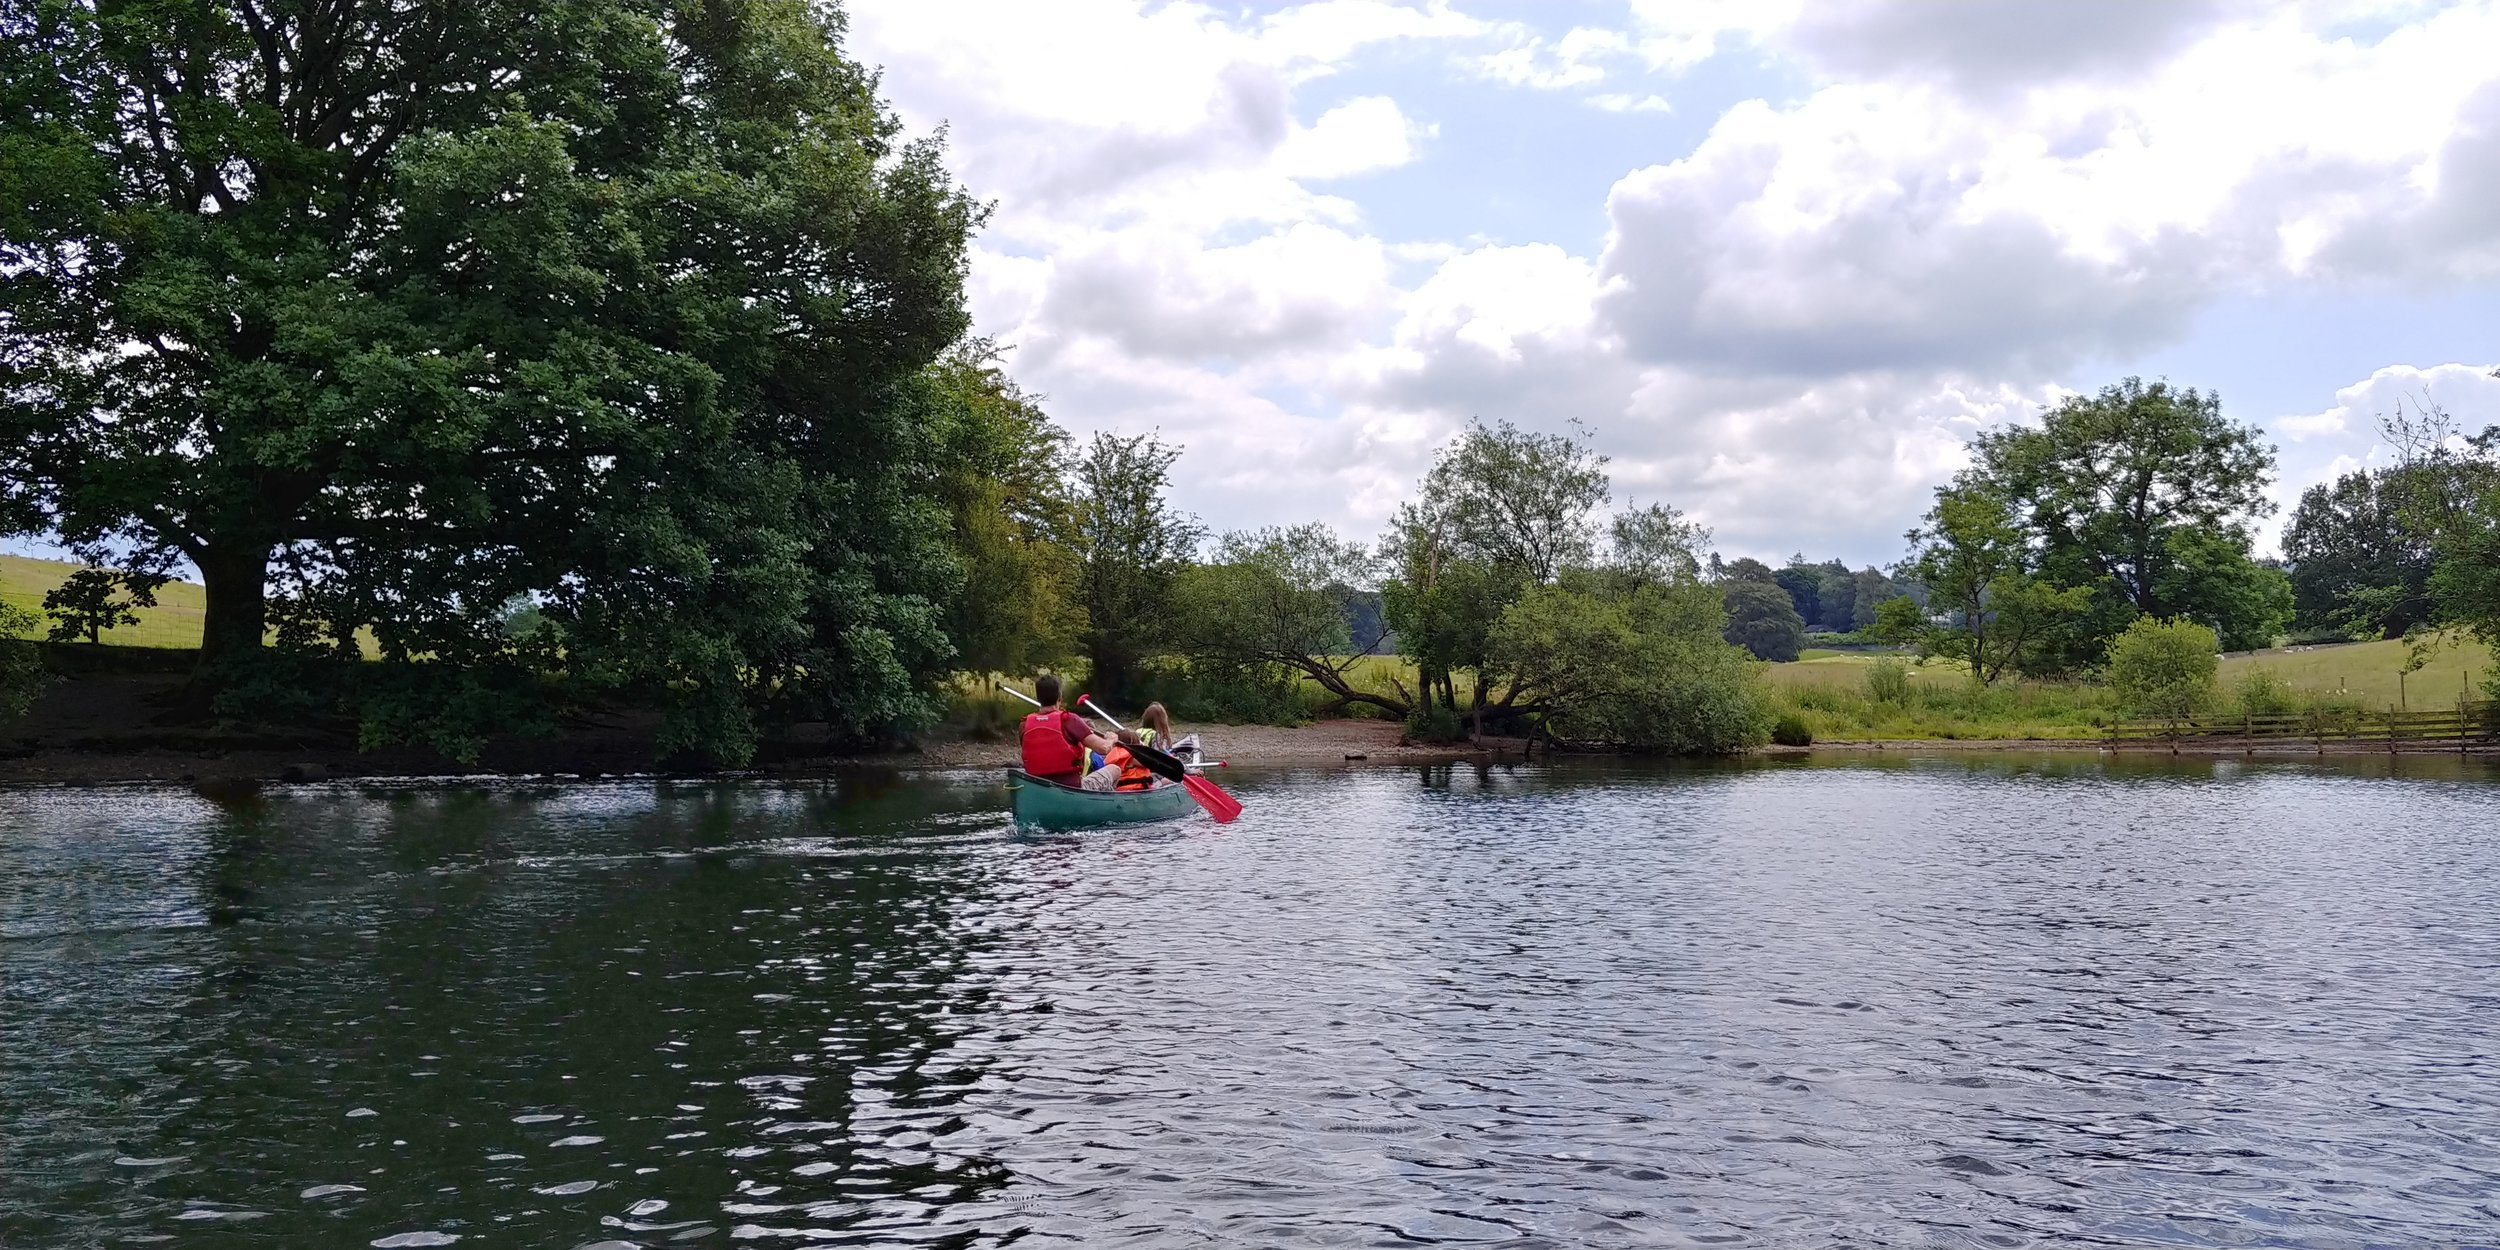 My family in the Canadian canoe.